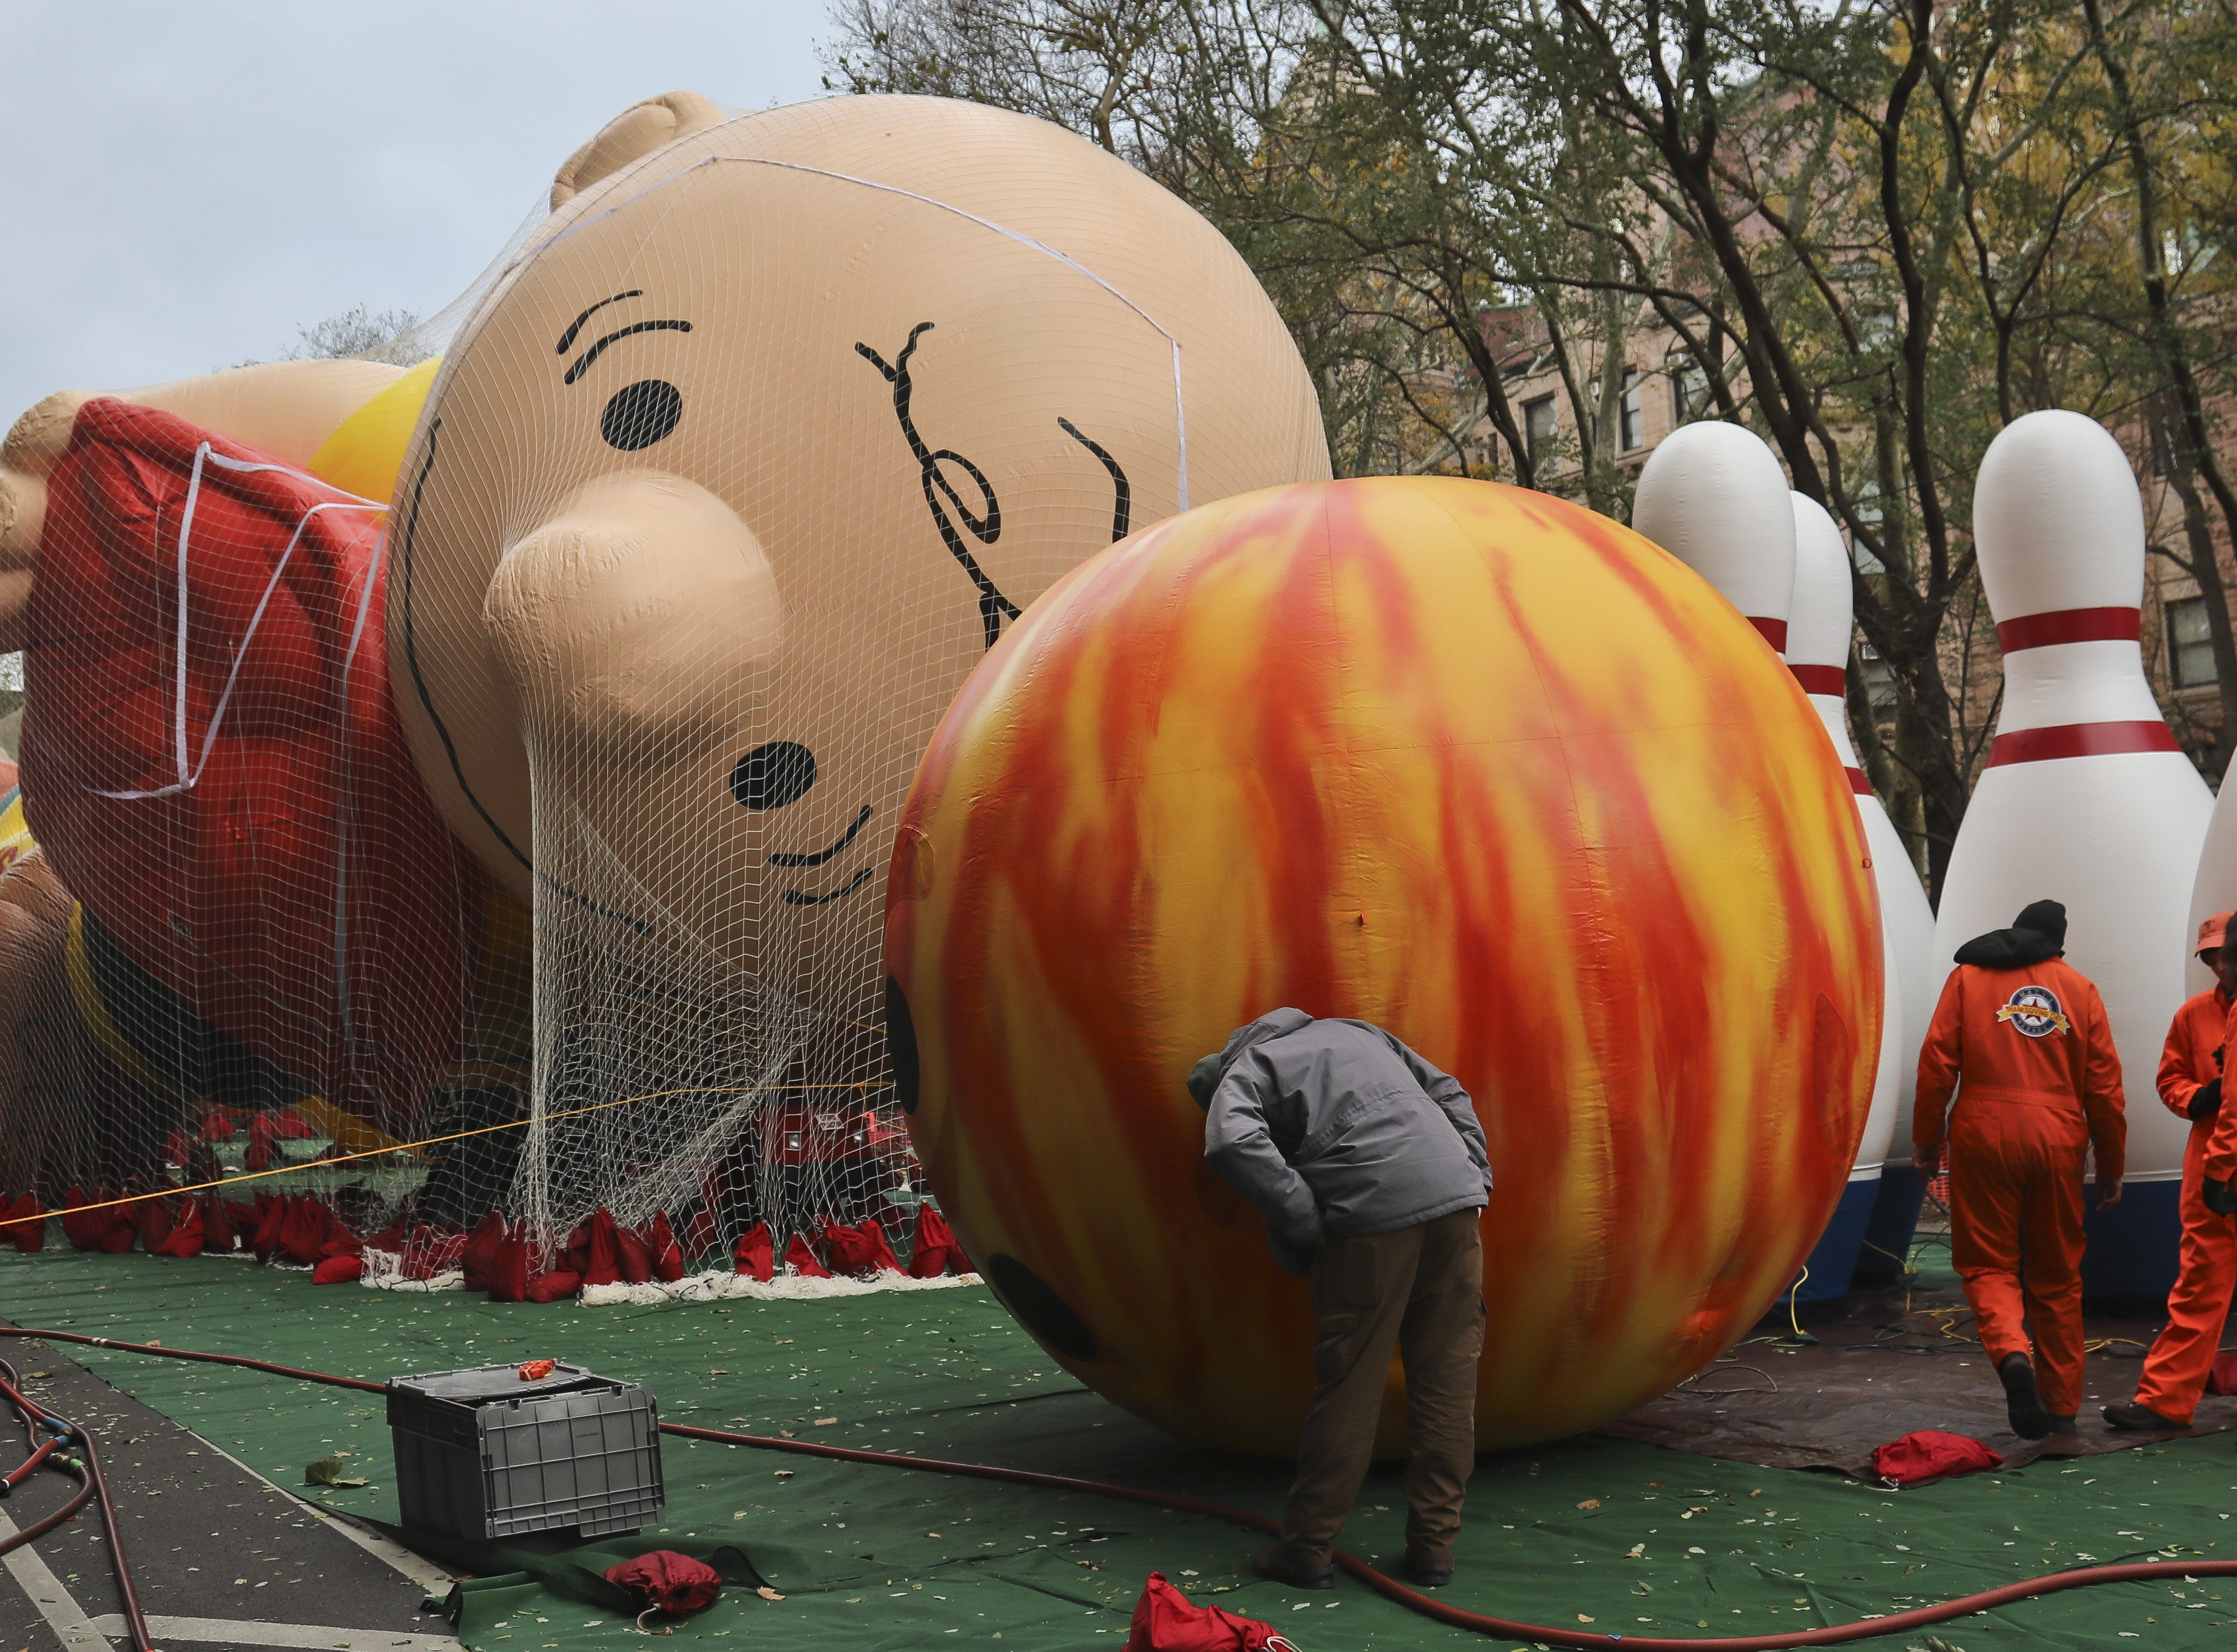 Giant character balloons, including Charlie Brown and Go Bowling, are inflated the night before their appearance in the 92nd Macy's Thanksgiving Day parade, Wednesday Nov. 21, 2018, in New York. (AP Photo/Bebeto Matthews)